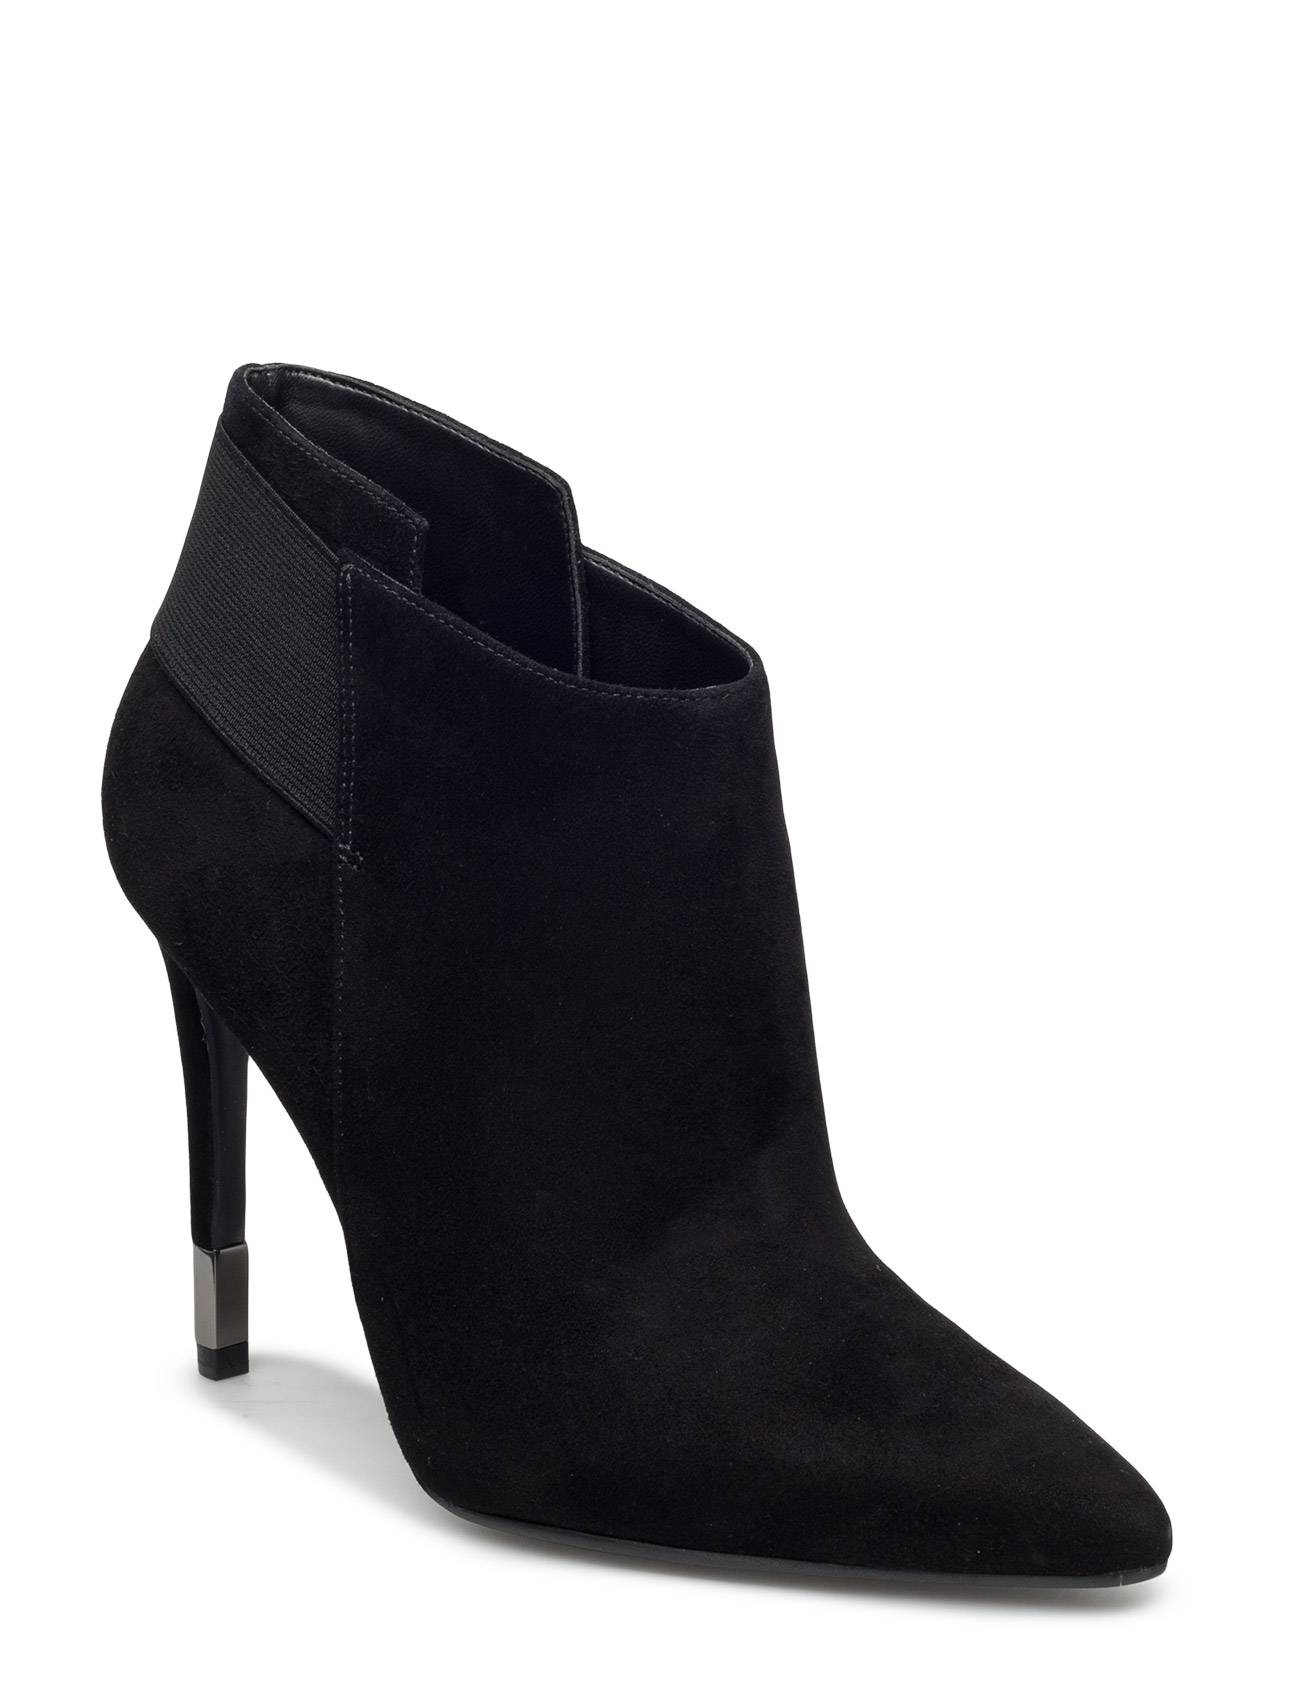 GUESS Oliva2/Shootie (Ankle Boot)/S